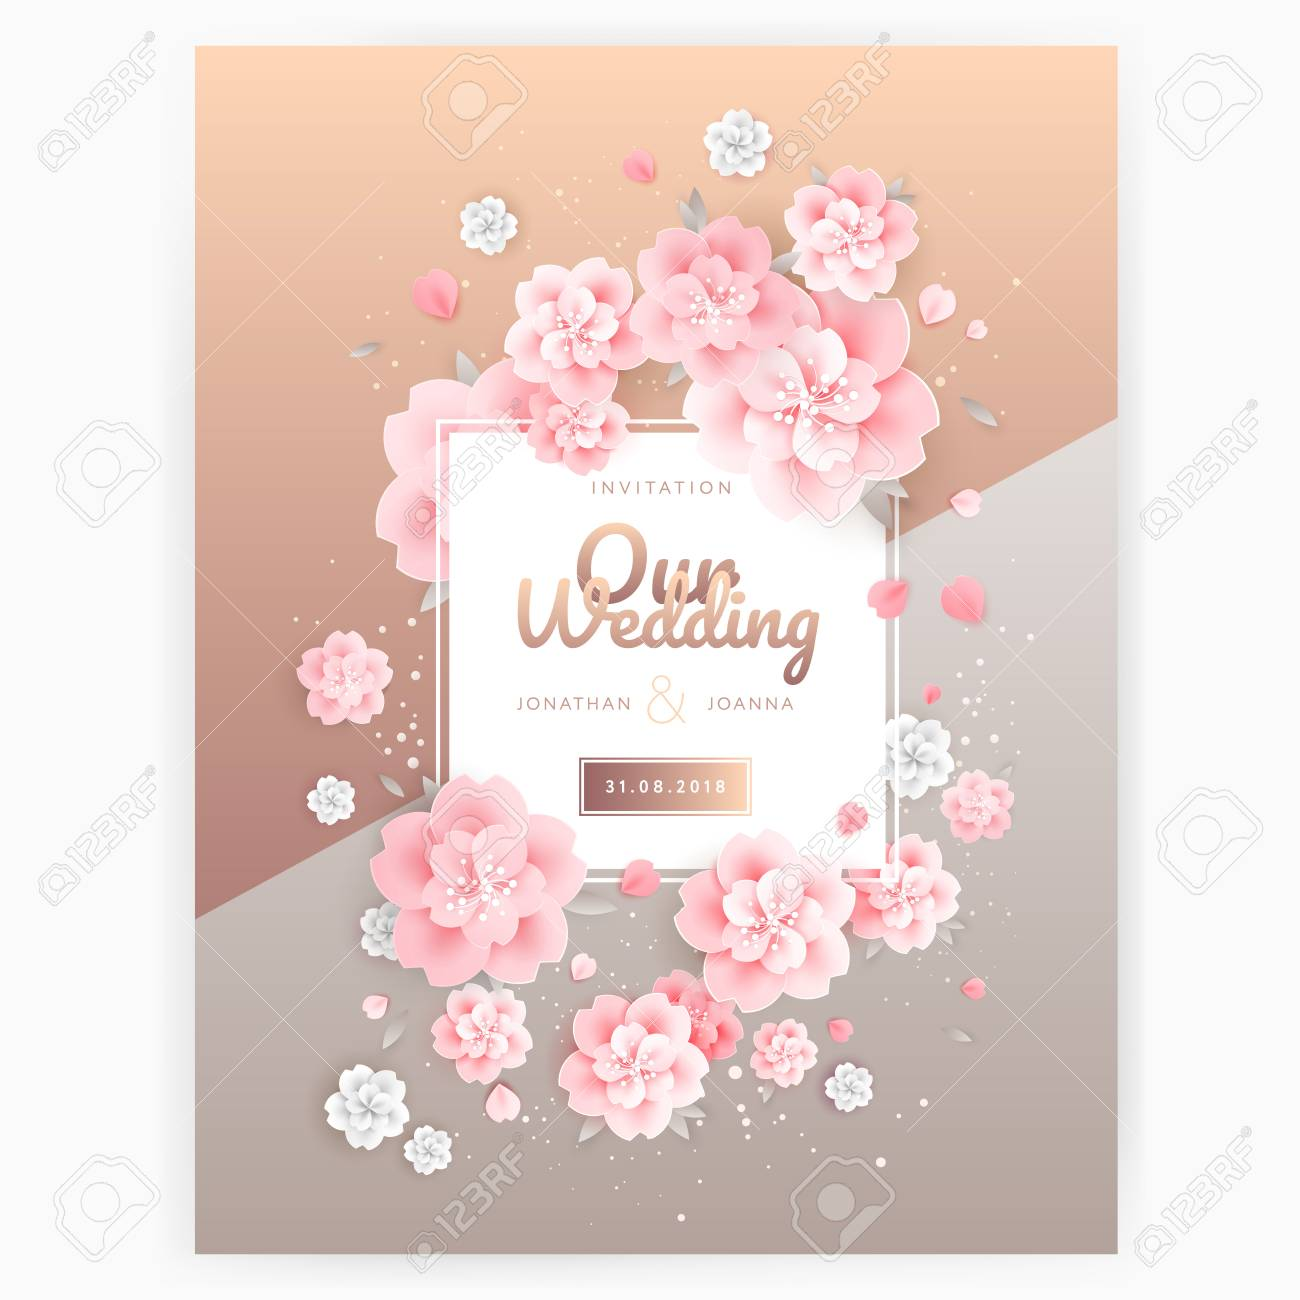 Wedding Invitation Card Background Template With Pink Floral